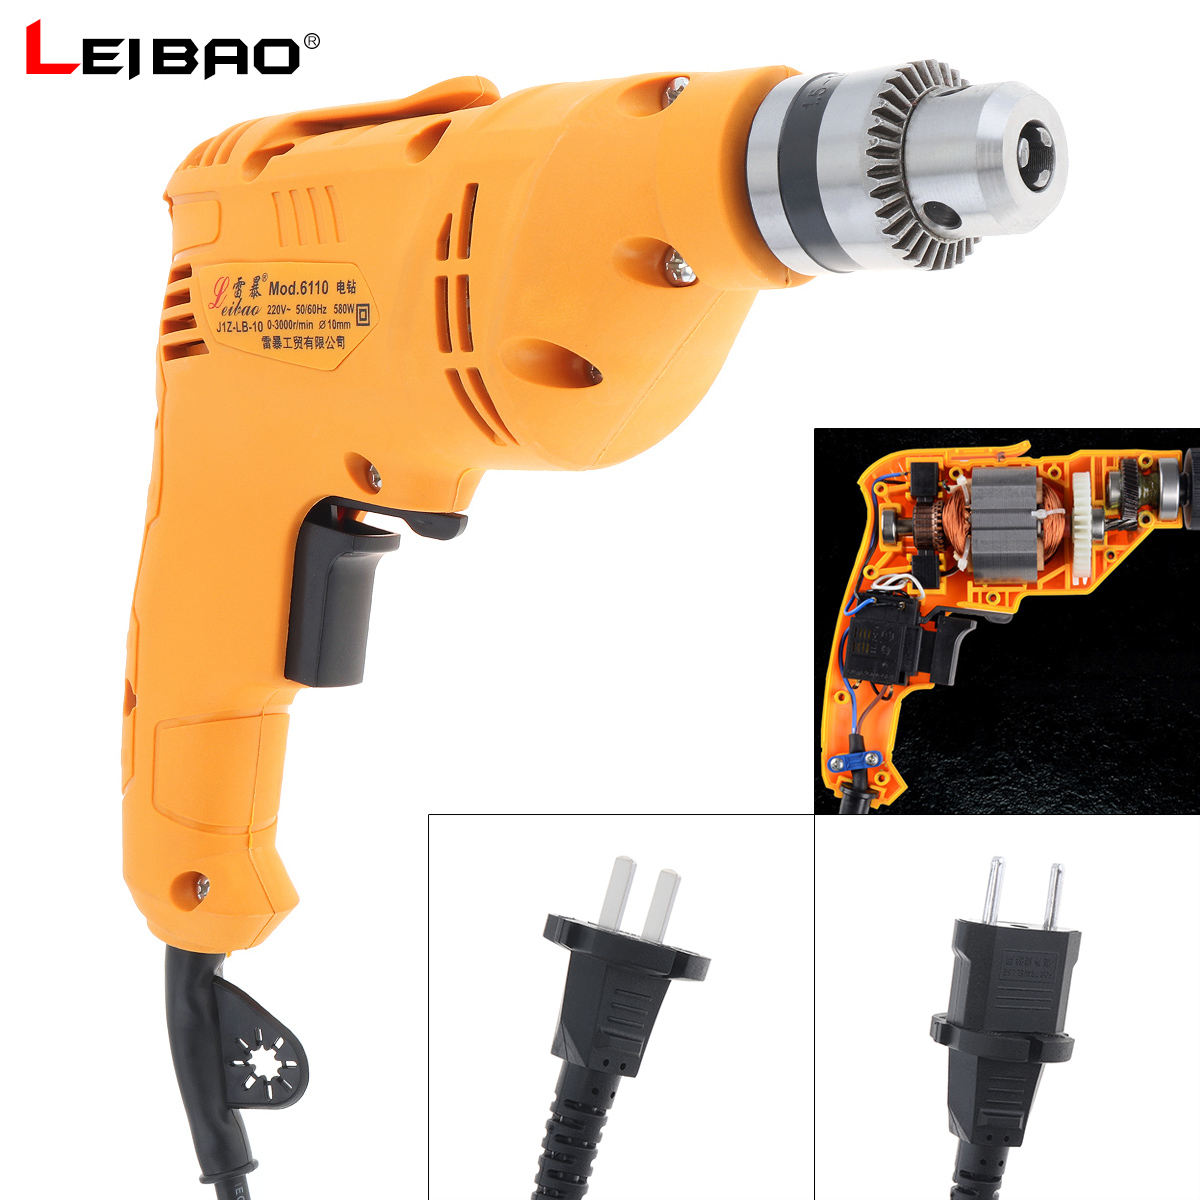 220V 550W / 580W / 710W/ 780W Handheld Impact Electric Pistol Drill with Rotation Adjustment Switch and 10mm Drill Chuck image